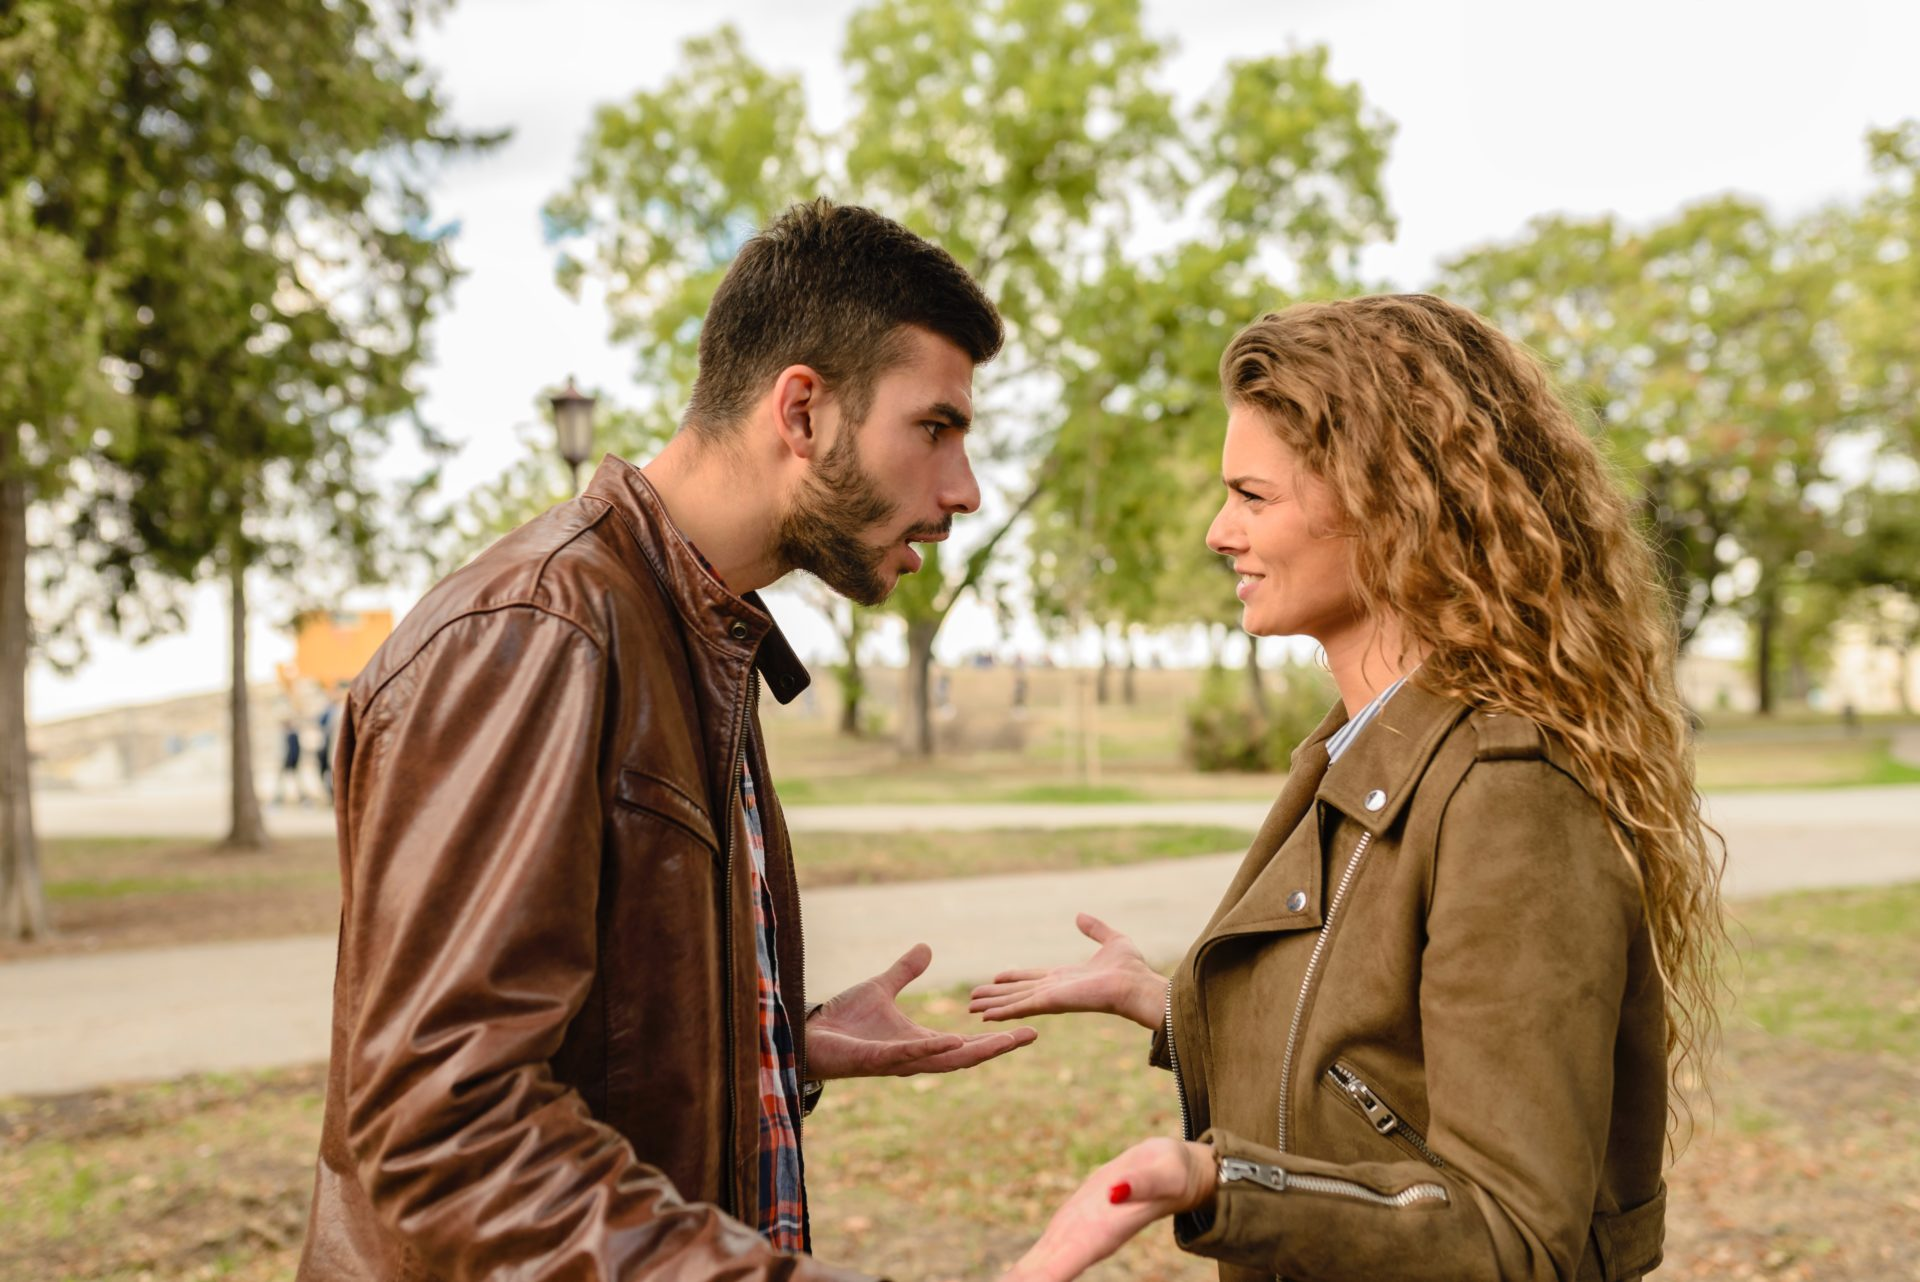 anger in marital conflict